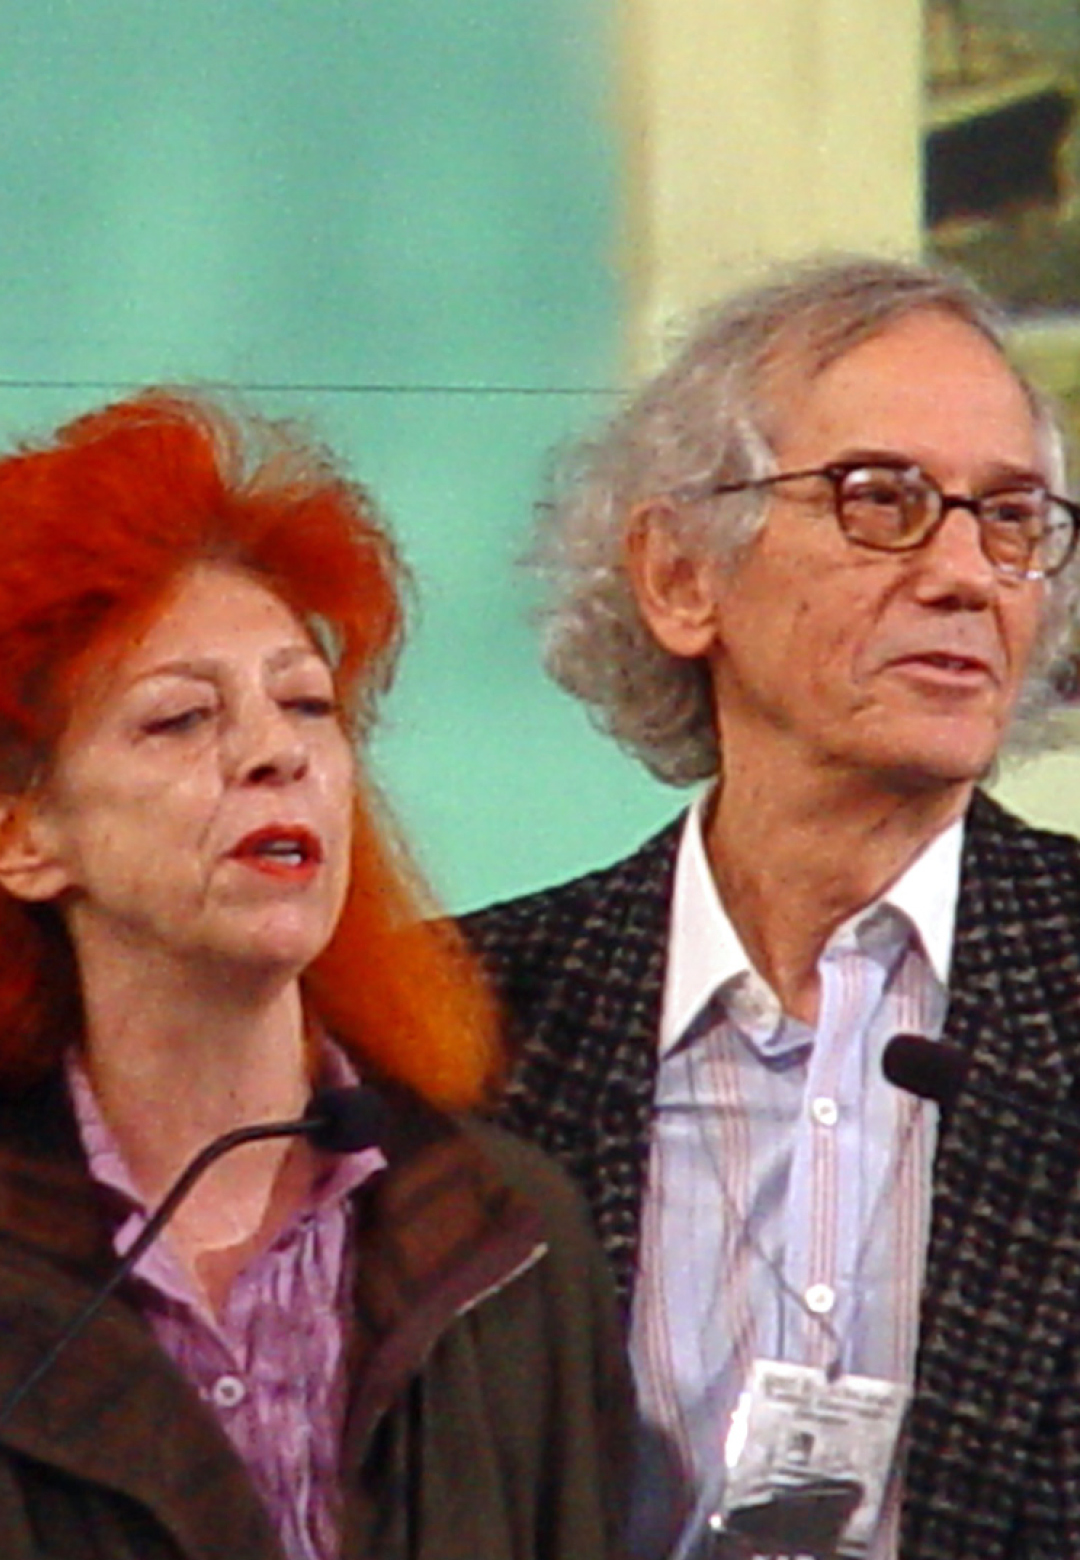 Christo and Jeanne-Claude | Ellis Island Heritage Award, 2005 | Christo and Jeanne-Claude | STIRworld